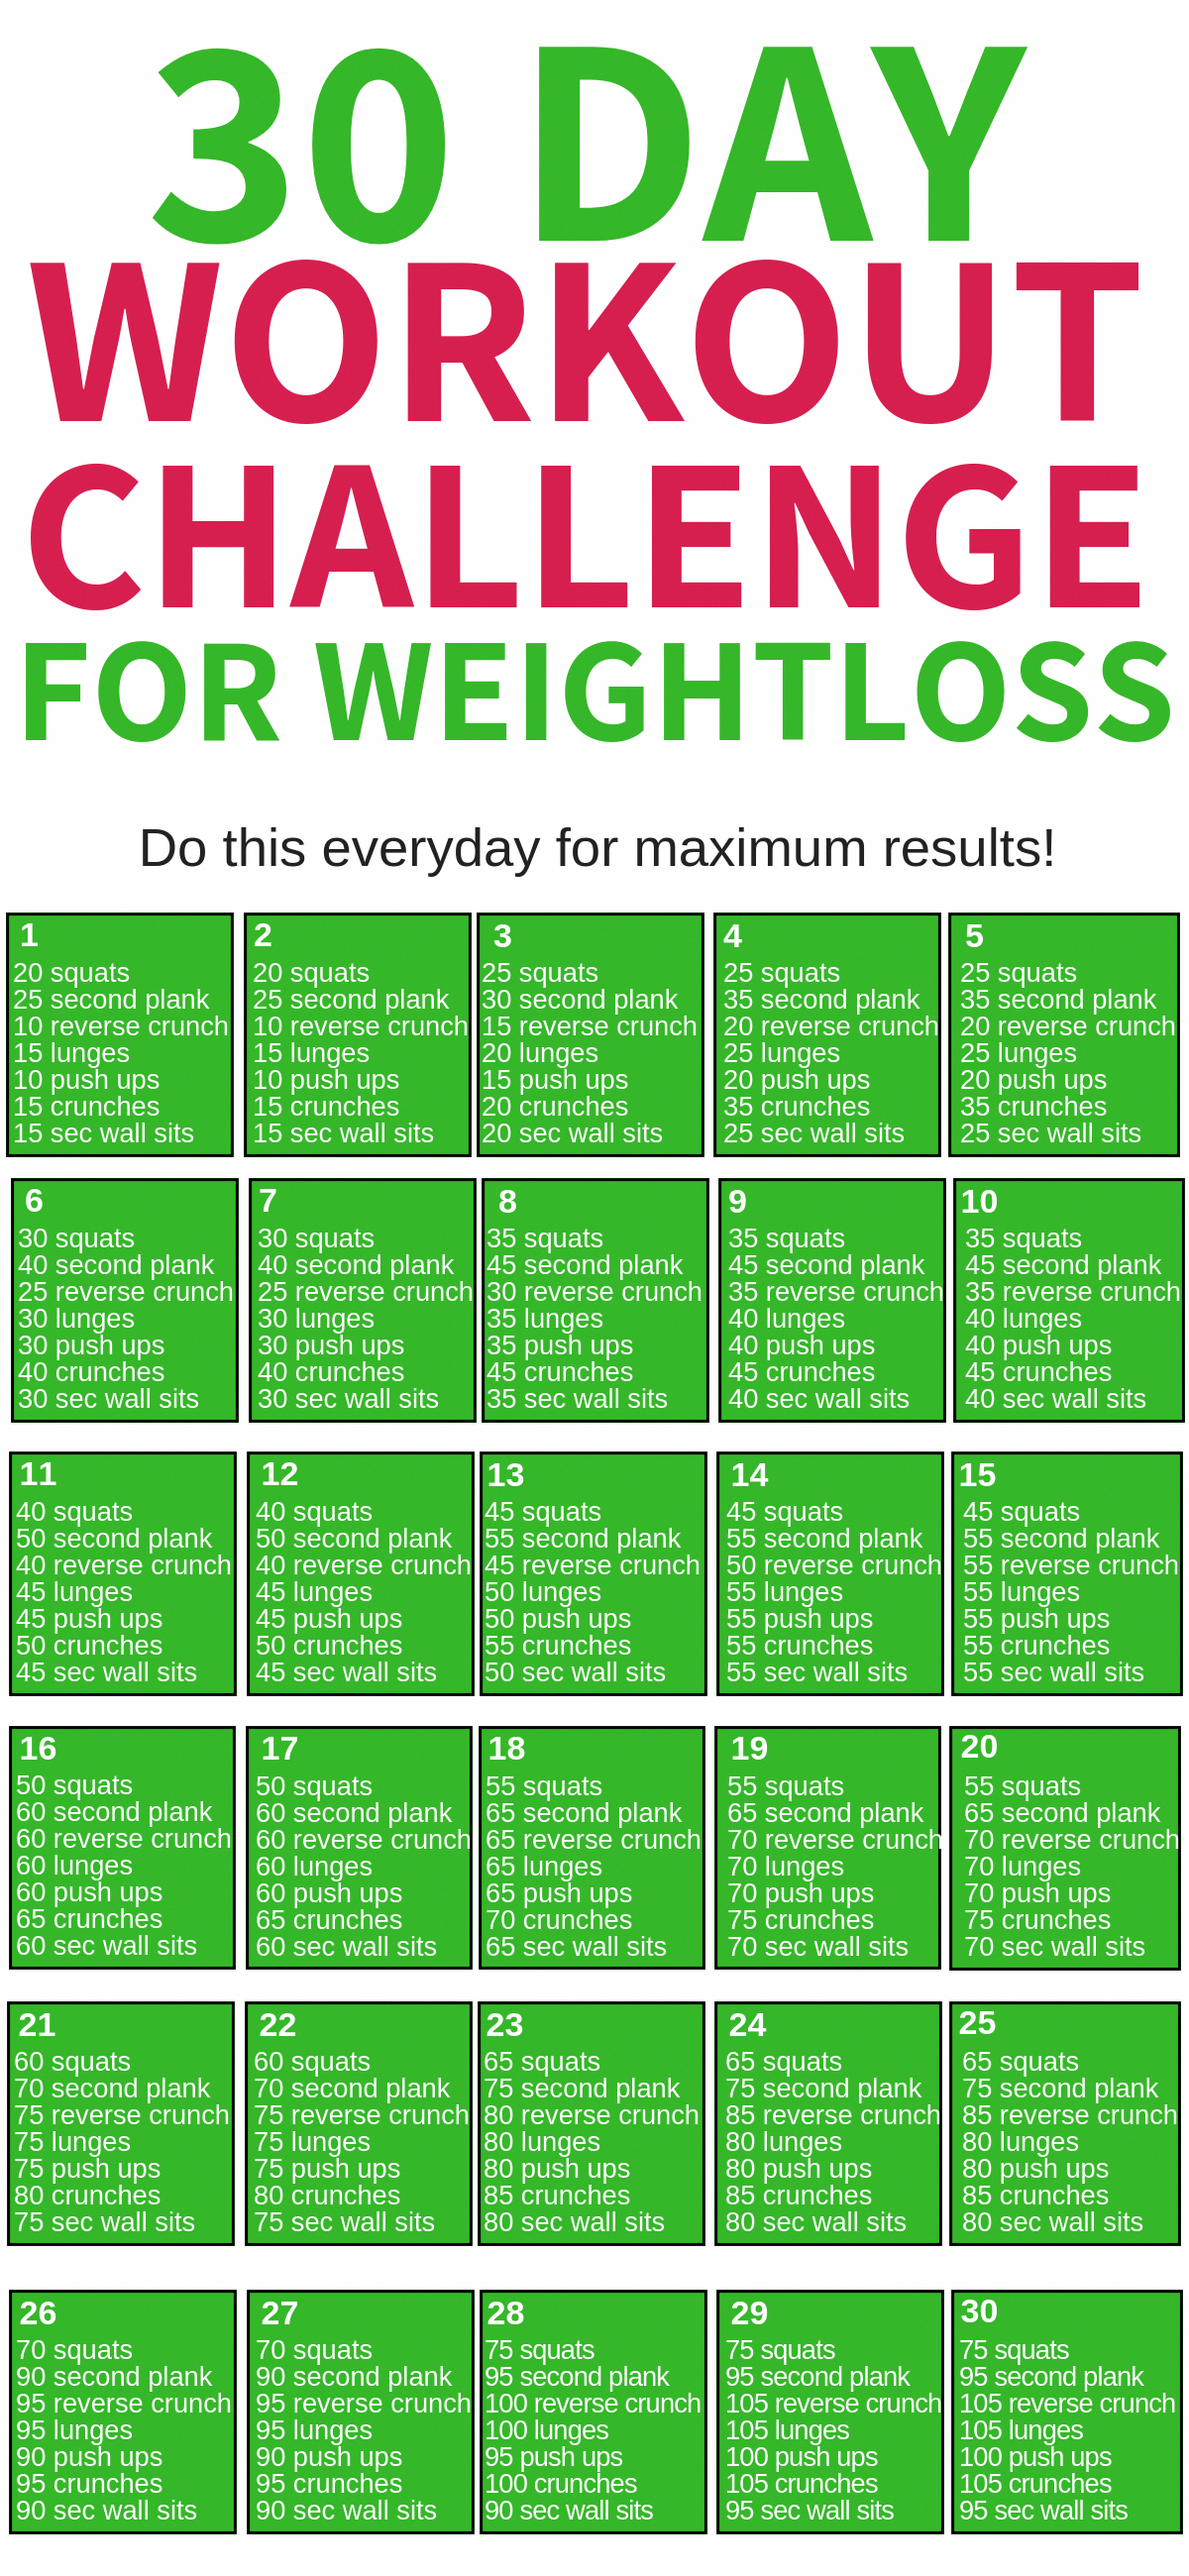 This 30 day workout challenge for beginners for weight loss is THE BEST! I'm so glad I found this aw...